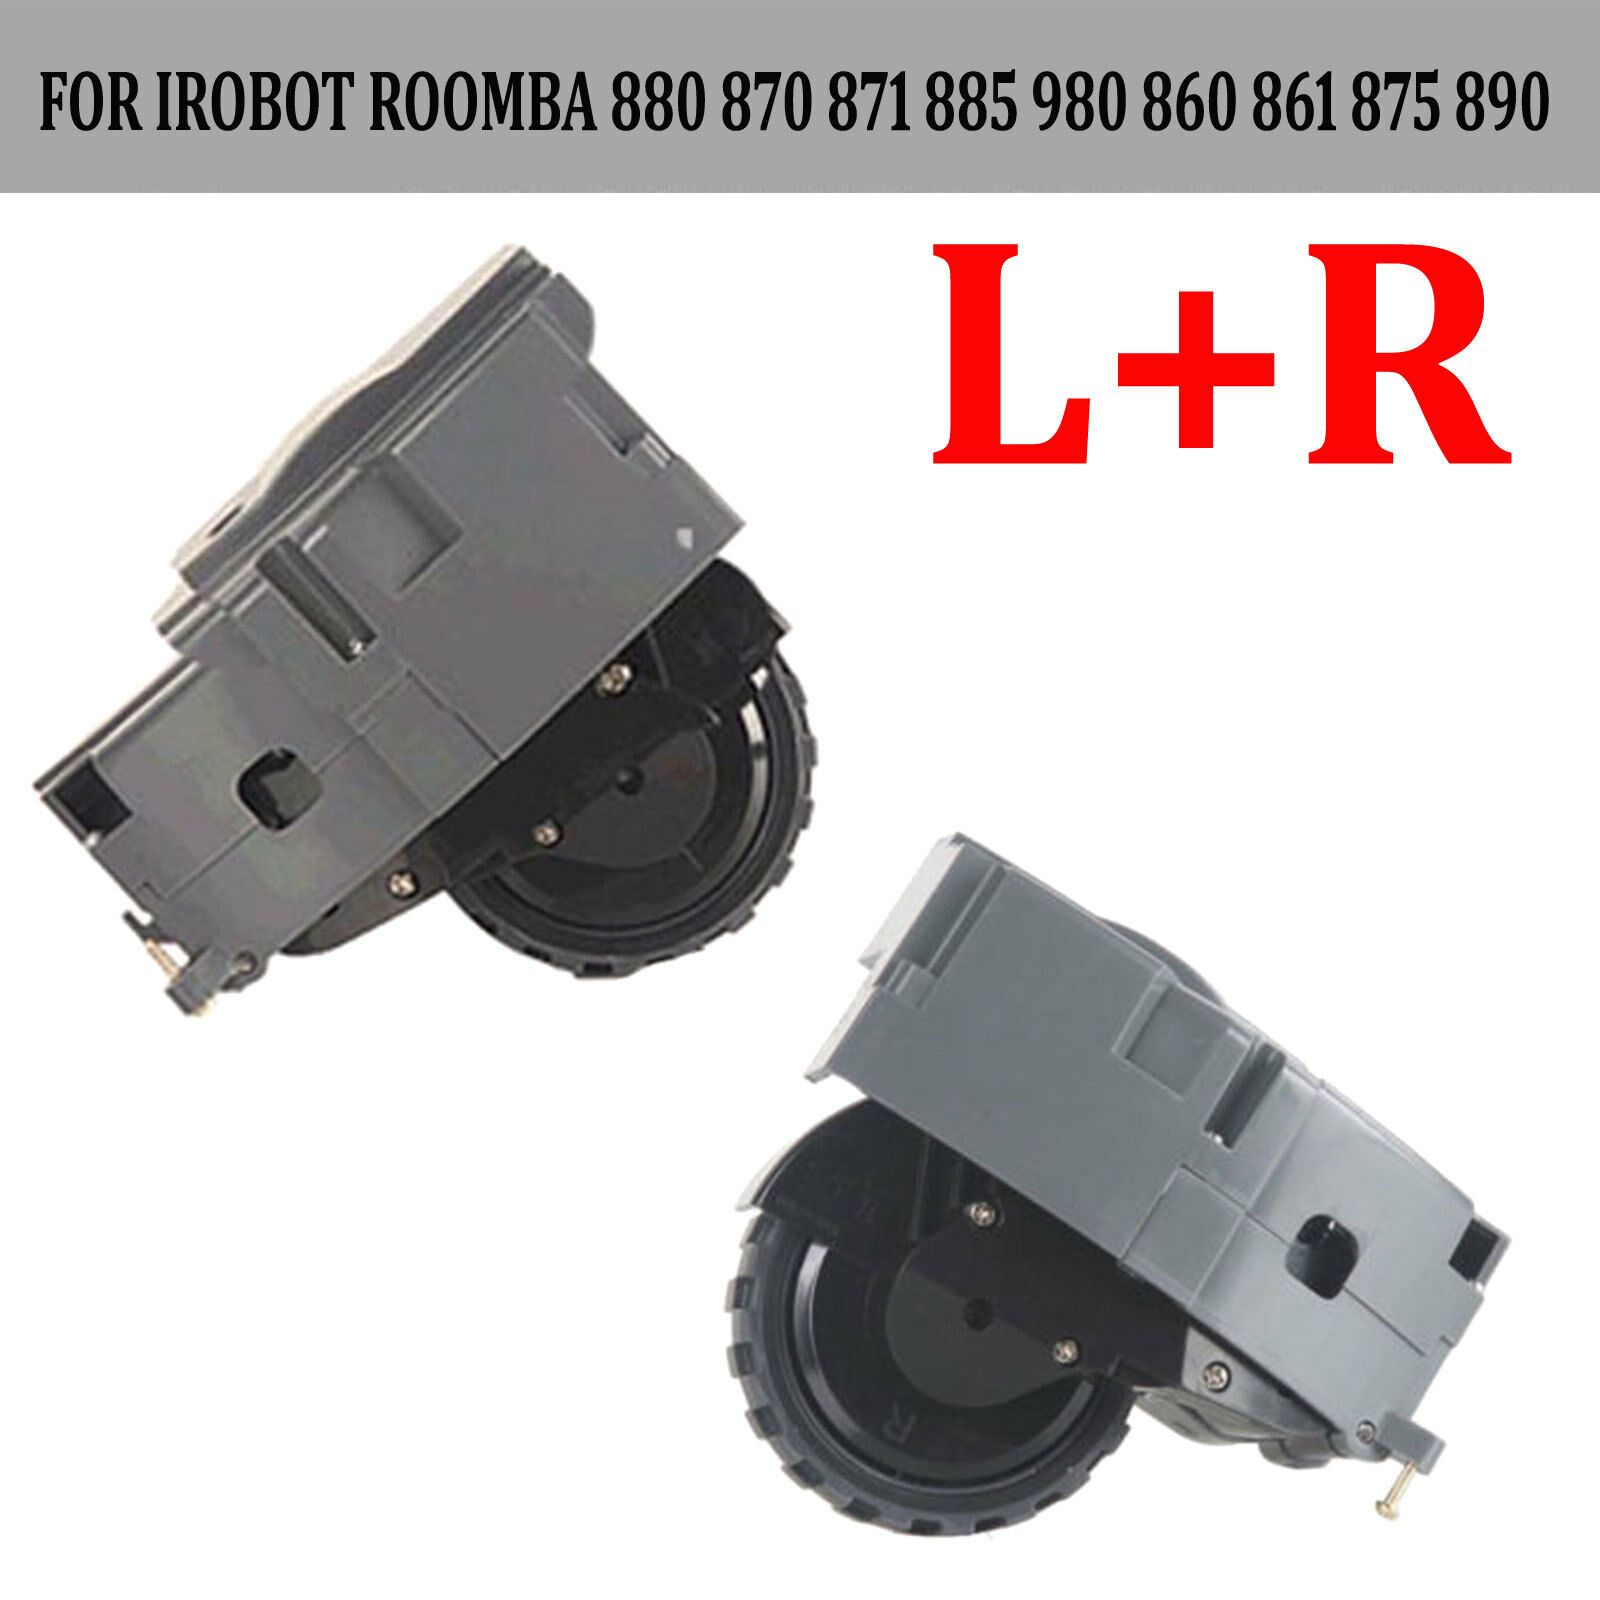 online outlet sale Left & Right Wheel Module for for for